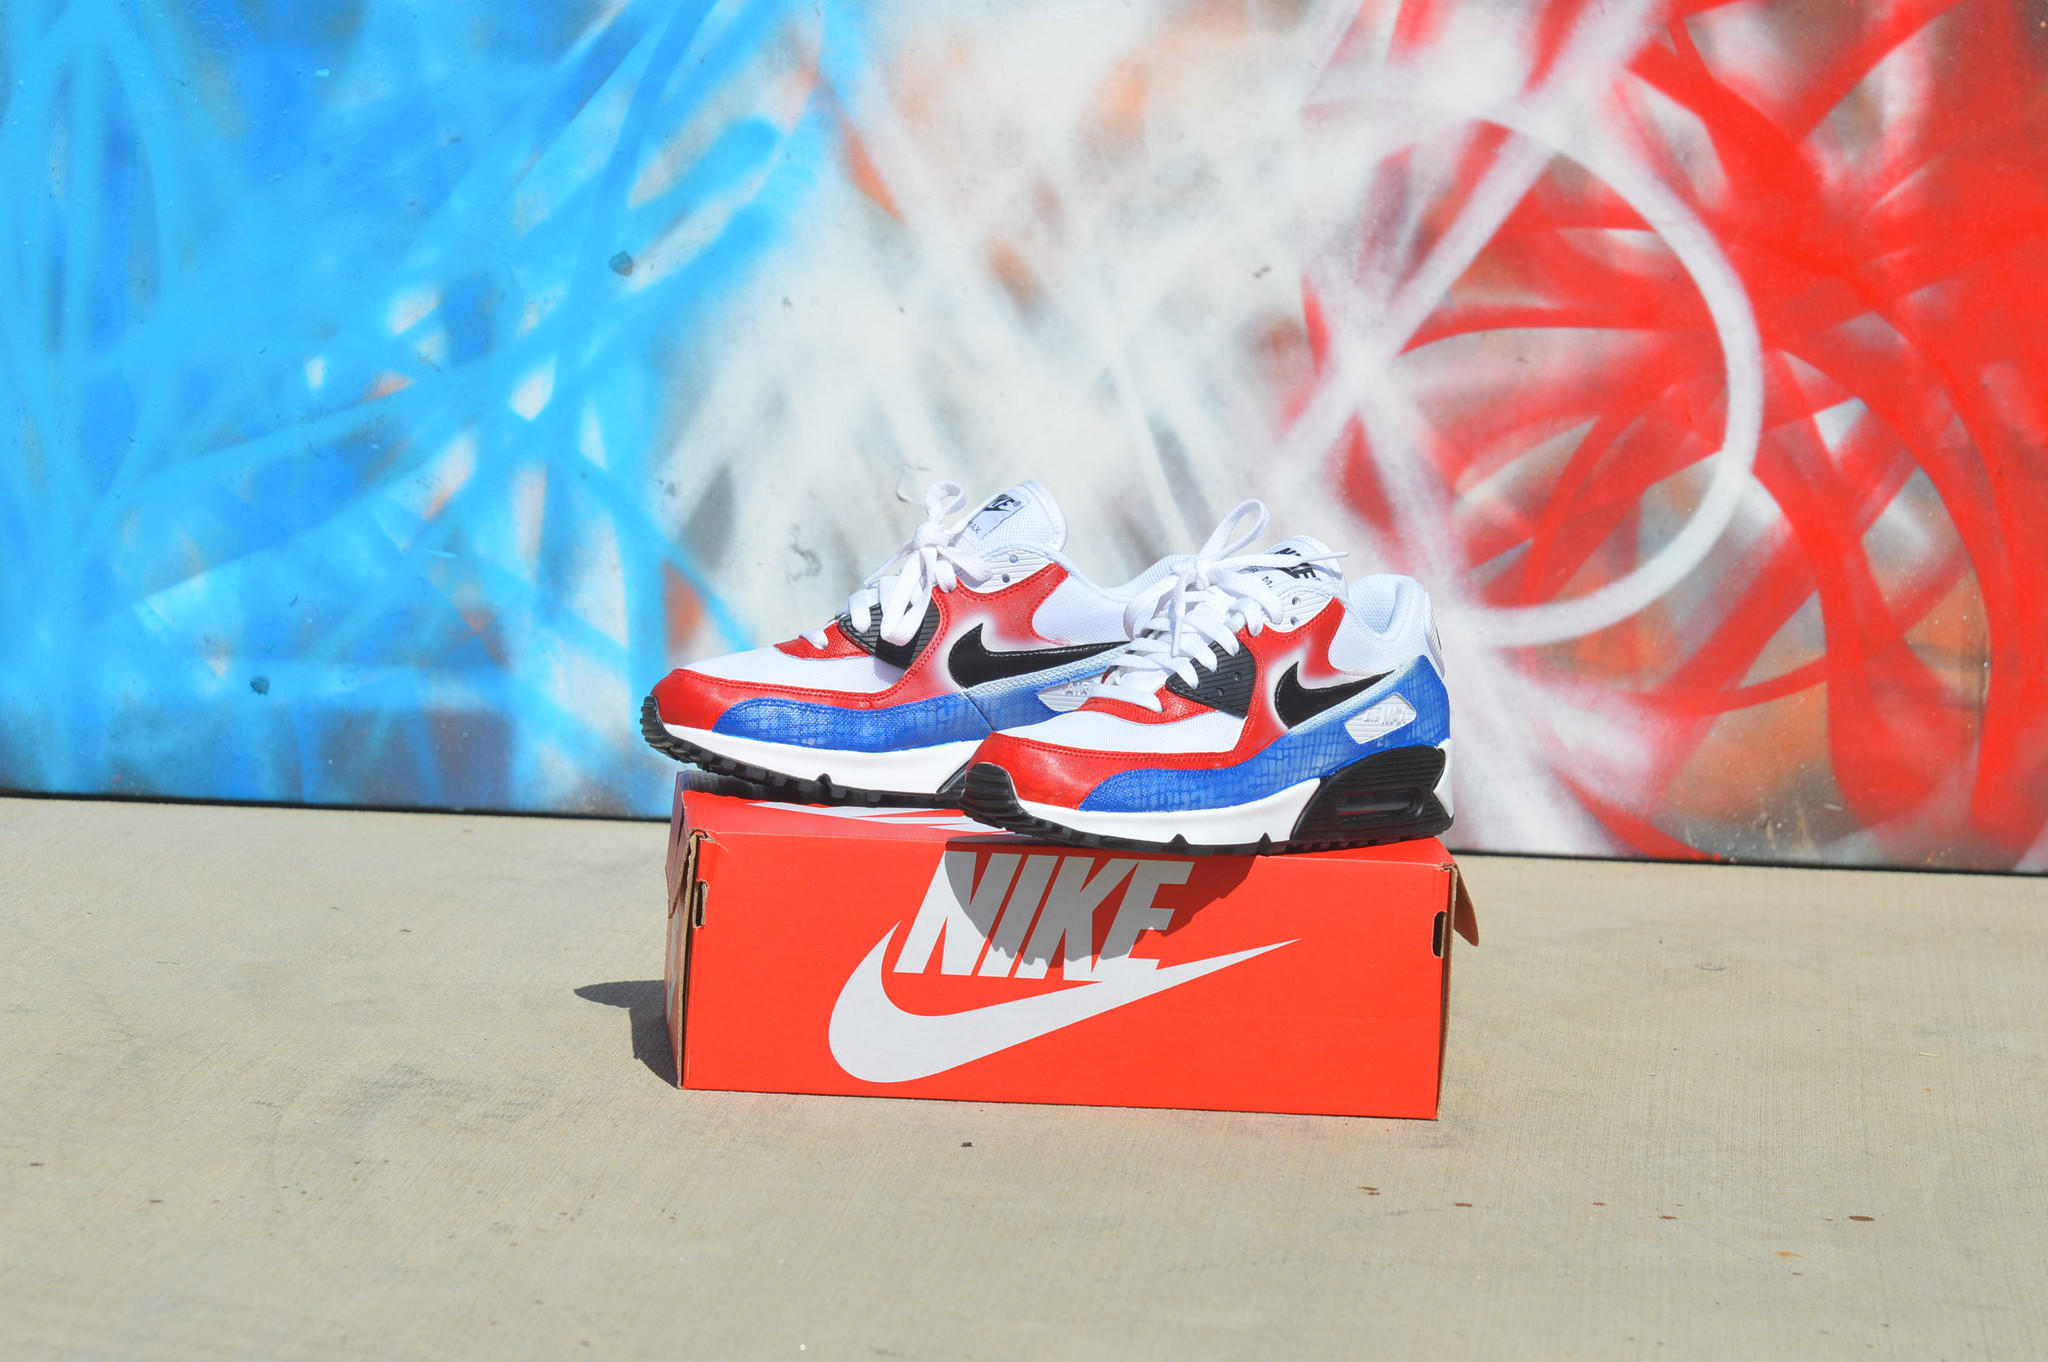 Custom Hand Painted Nike Air Max 90 Running Shoes - America Theme 03cfd5f69c40